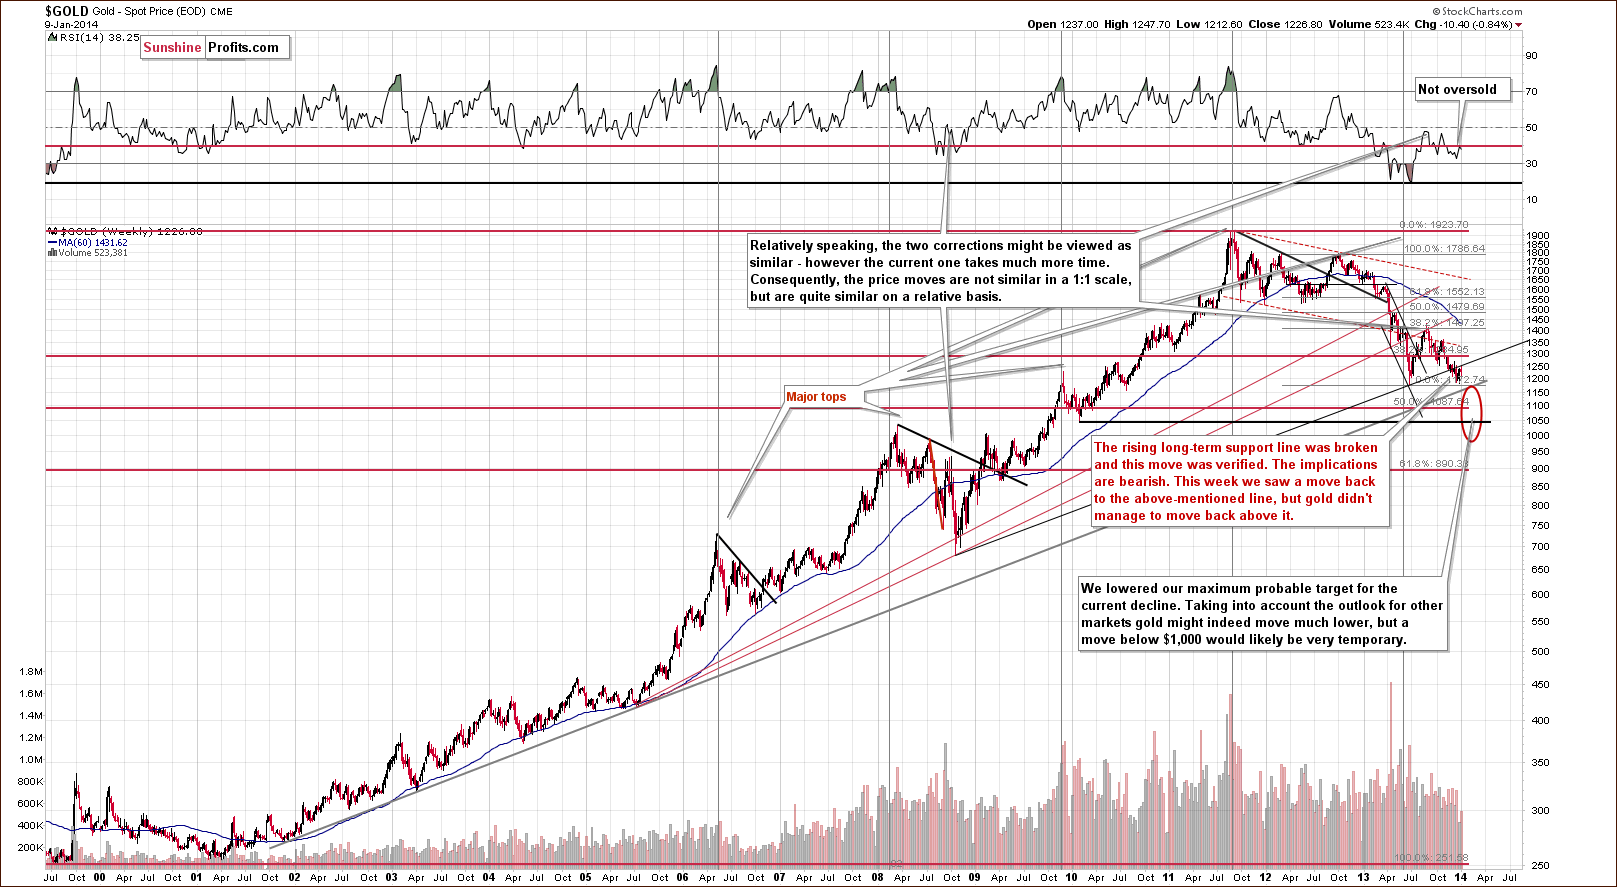 Long-term Gold price chart